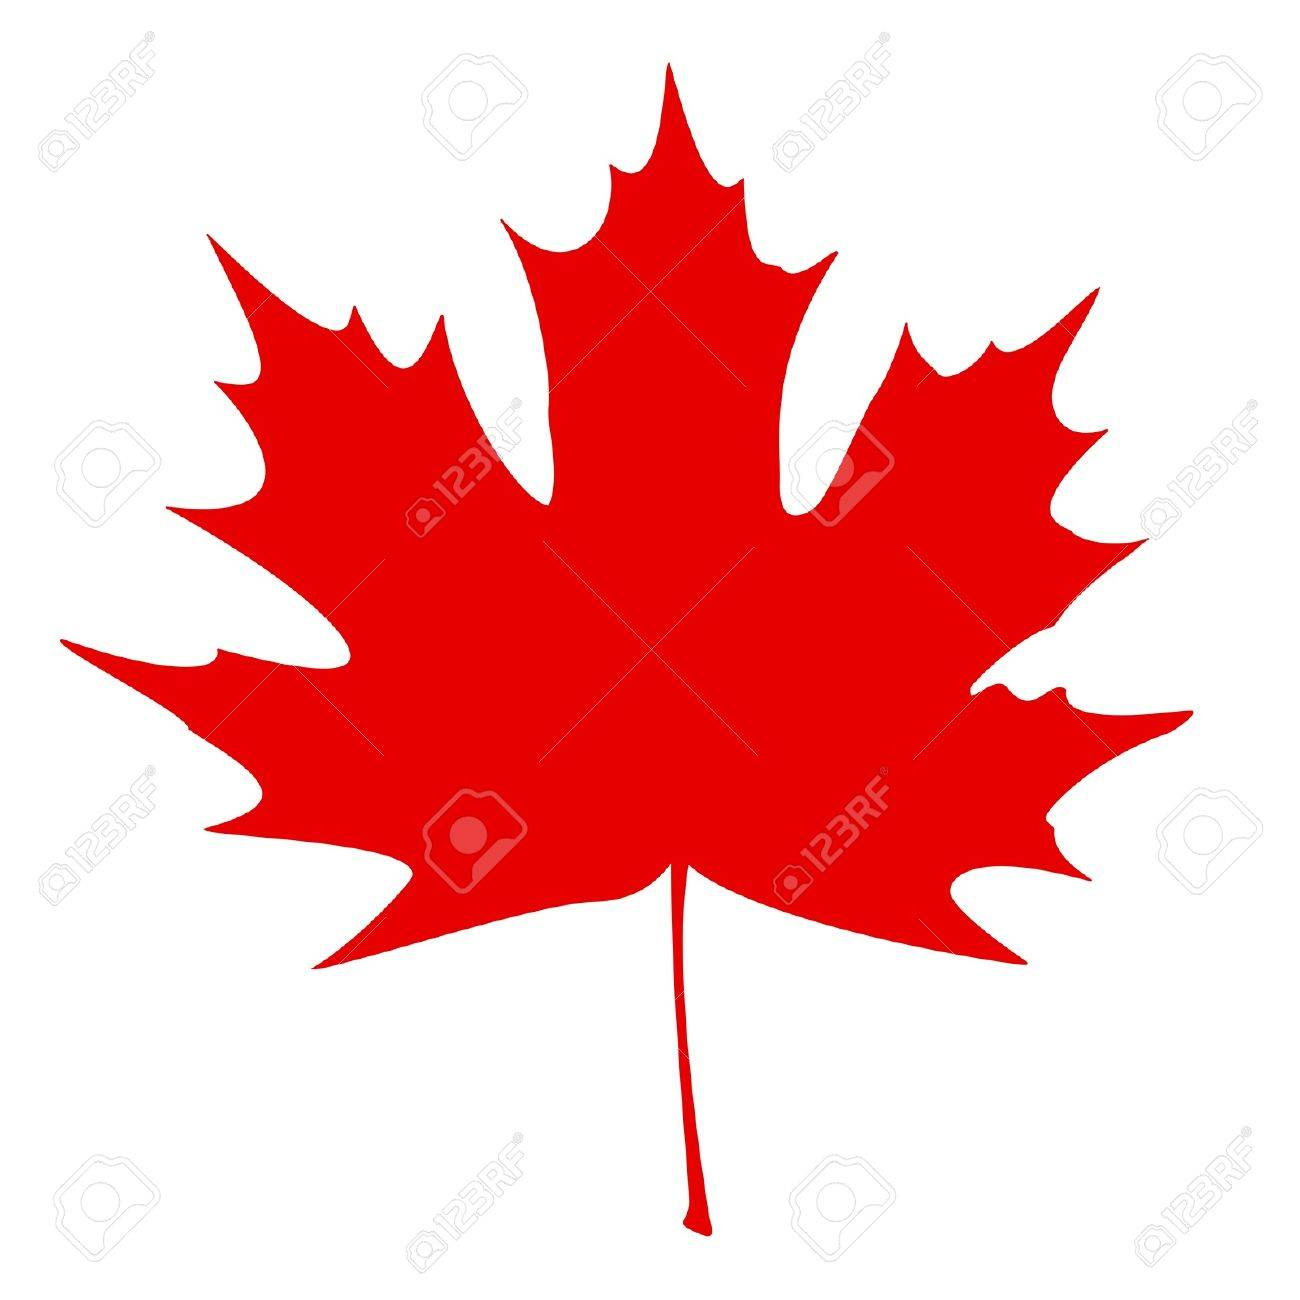 stylized canadian flag vector illustration royalty free cliparts